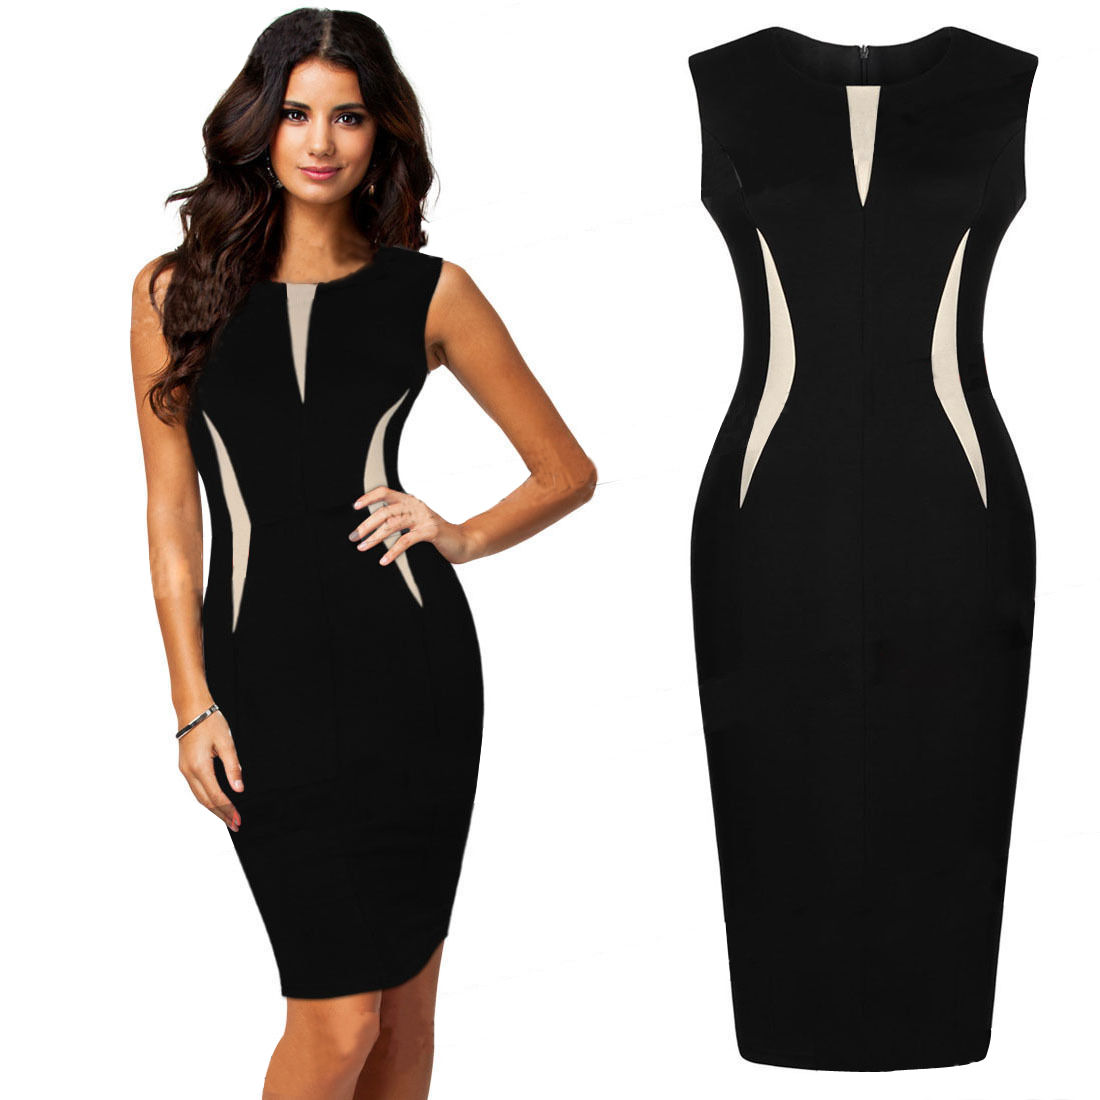 Fashion Women Sleeveless Slim Bodycon Prom Party Cocktail Evening Pencil Dress